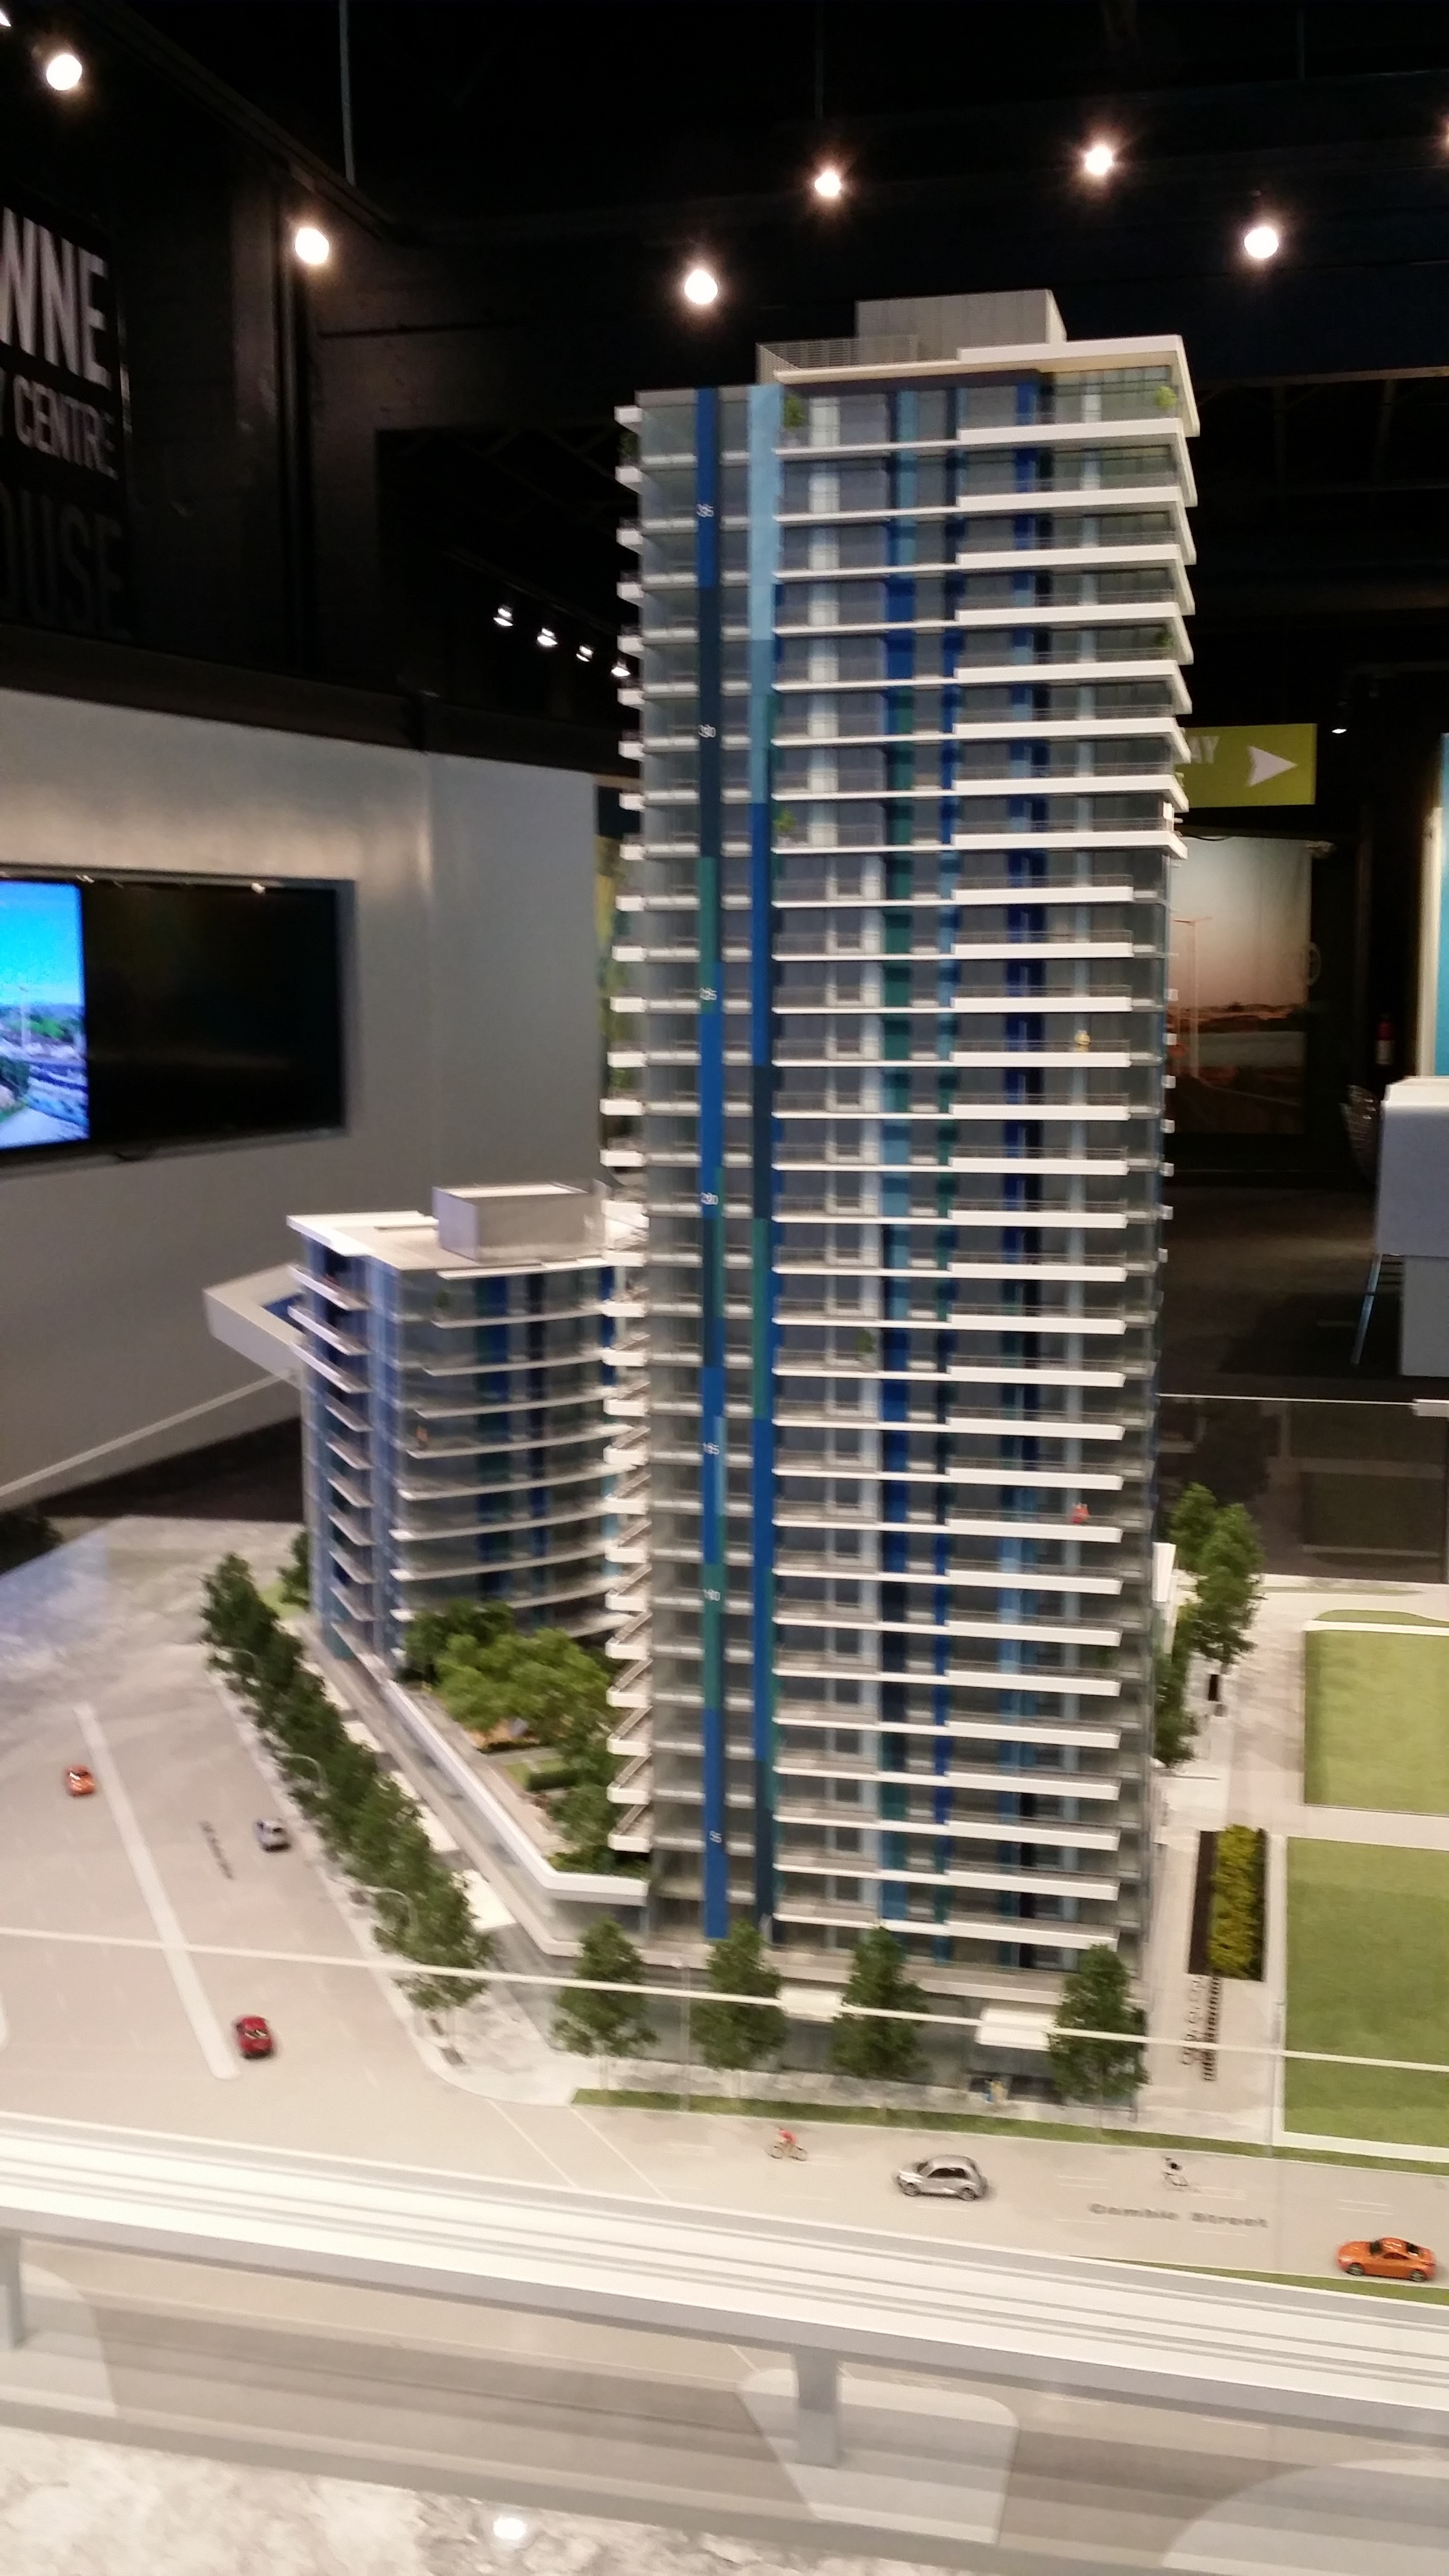 Northwest Presale Condo Display Model Courtesy Mike Stewart Realtor (4)